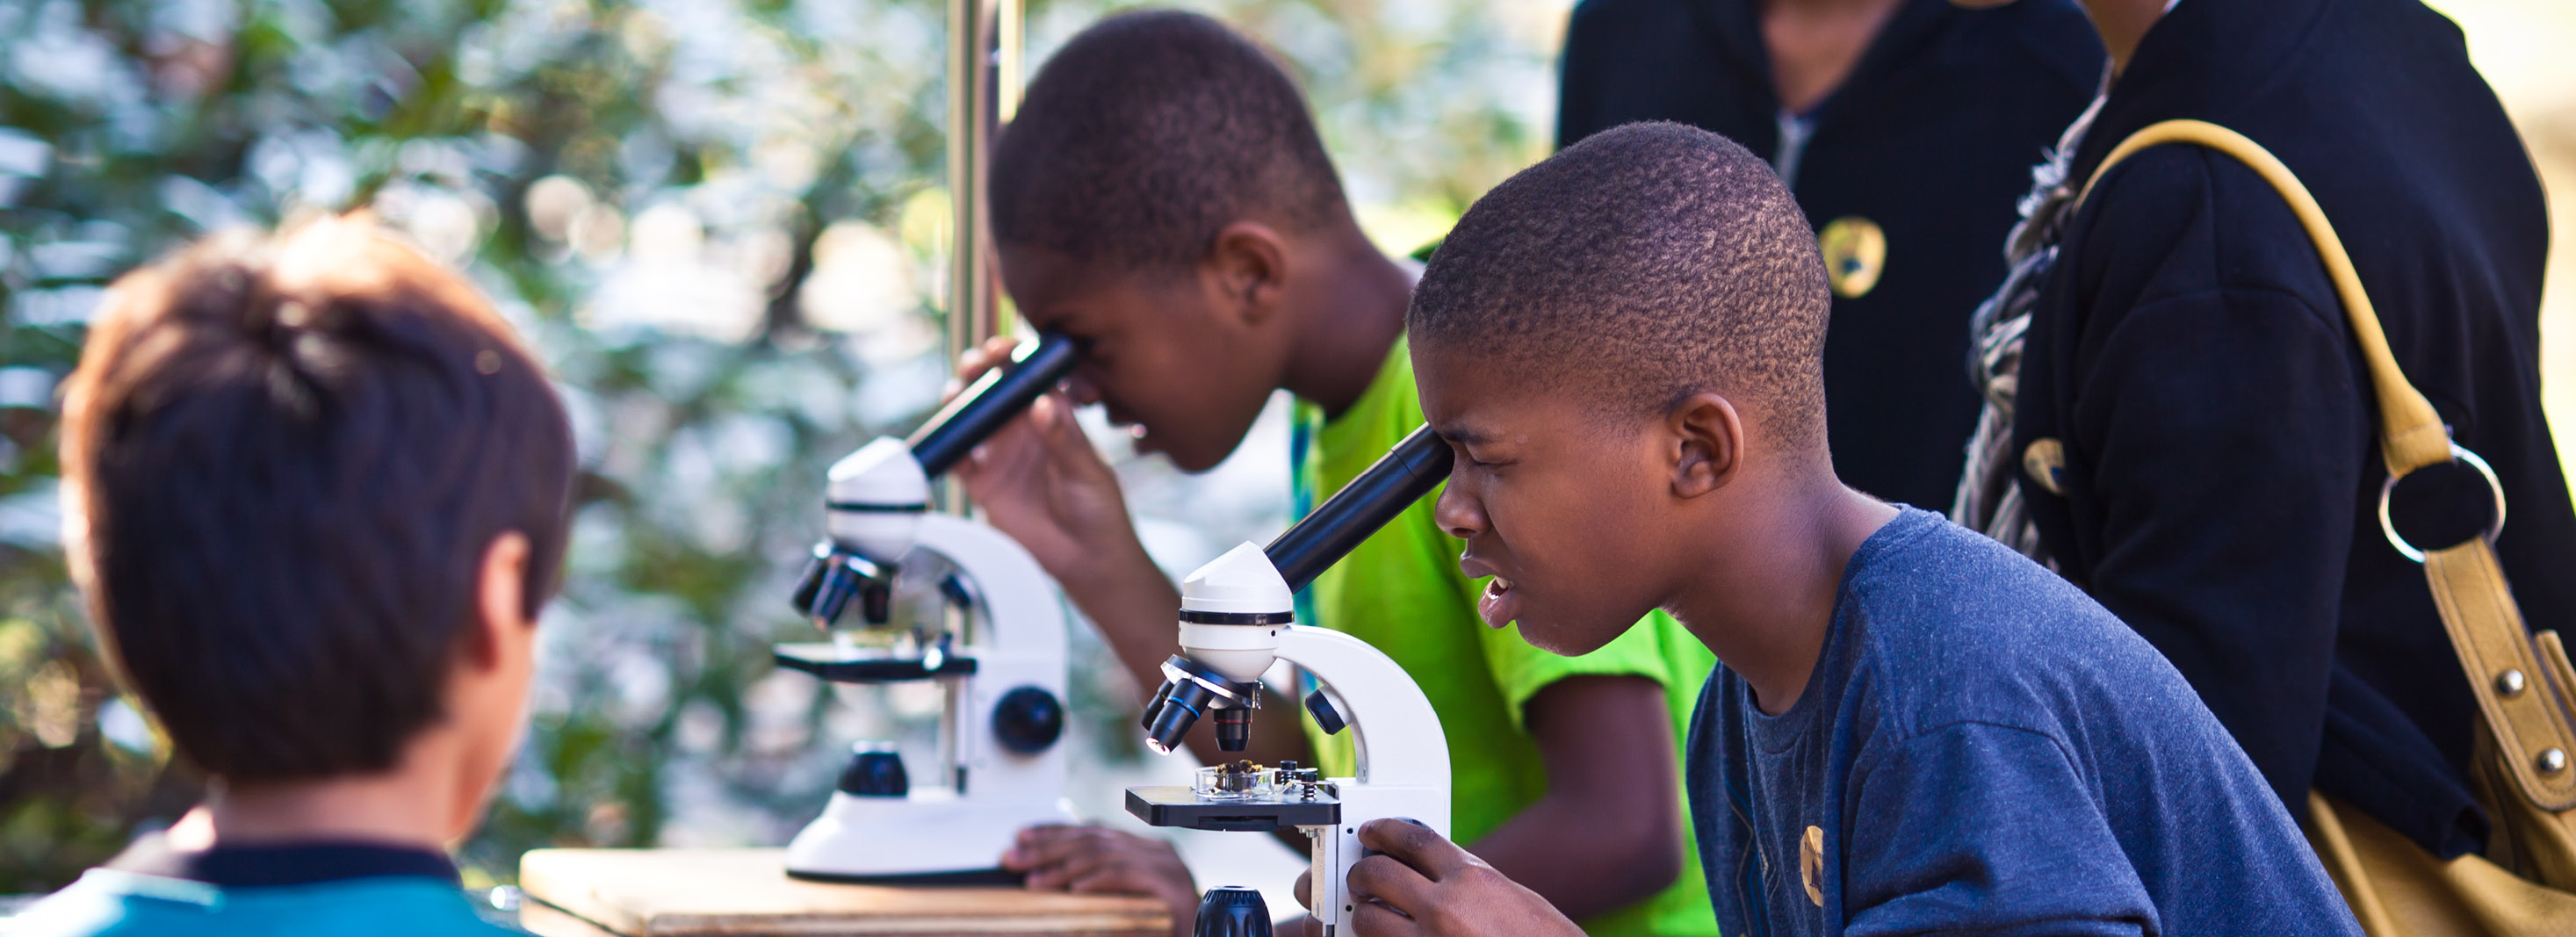 Children looking through microscopes at Hagley